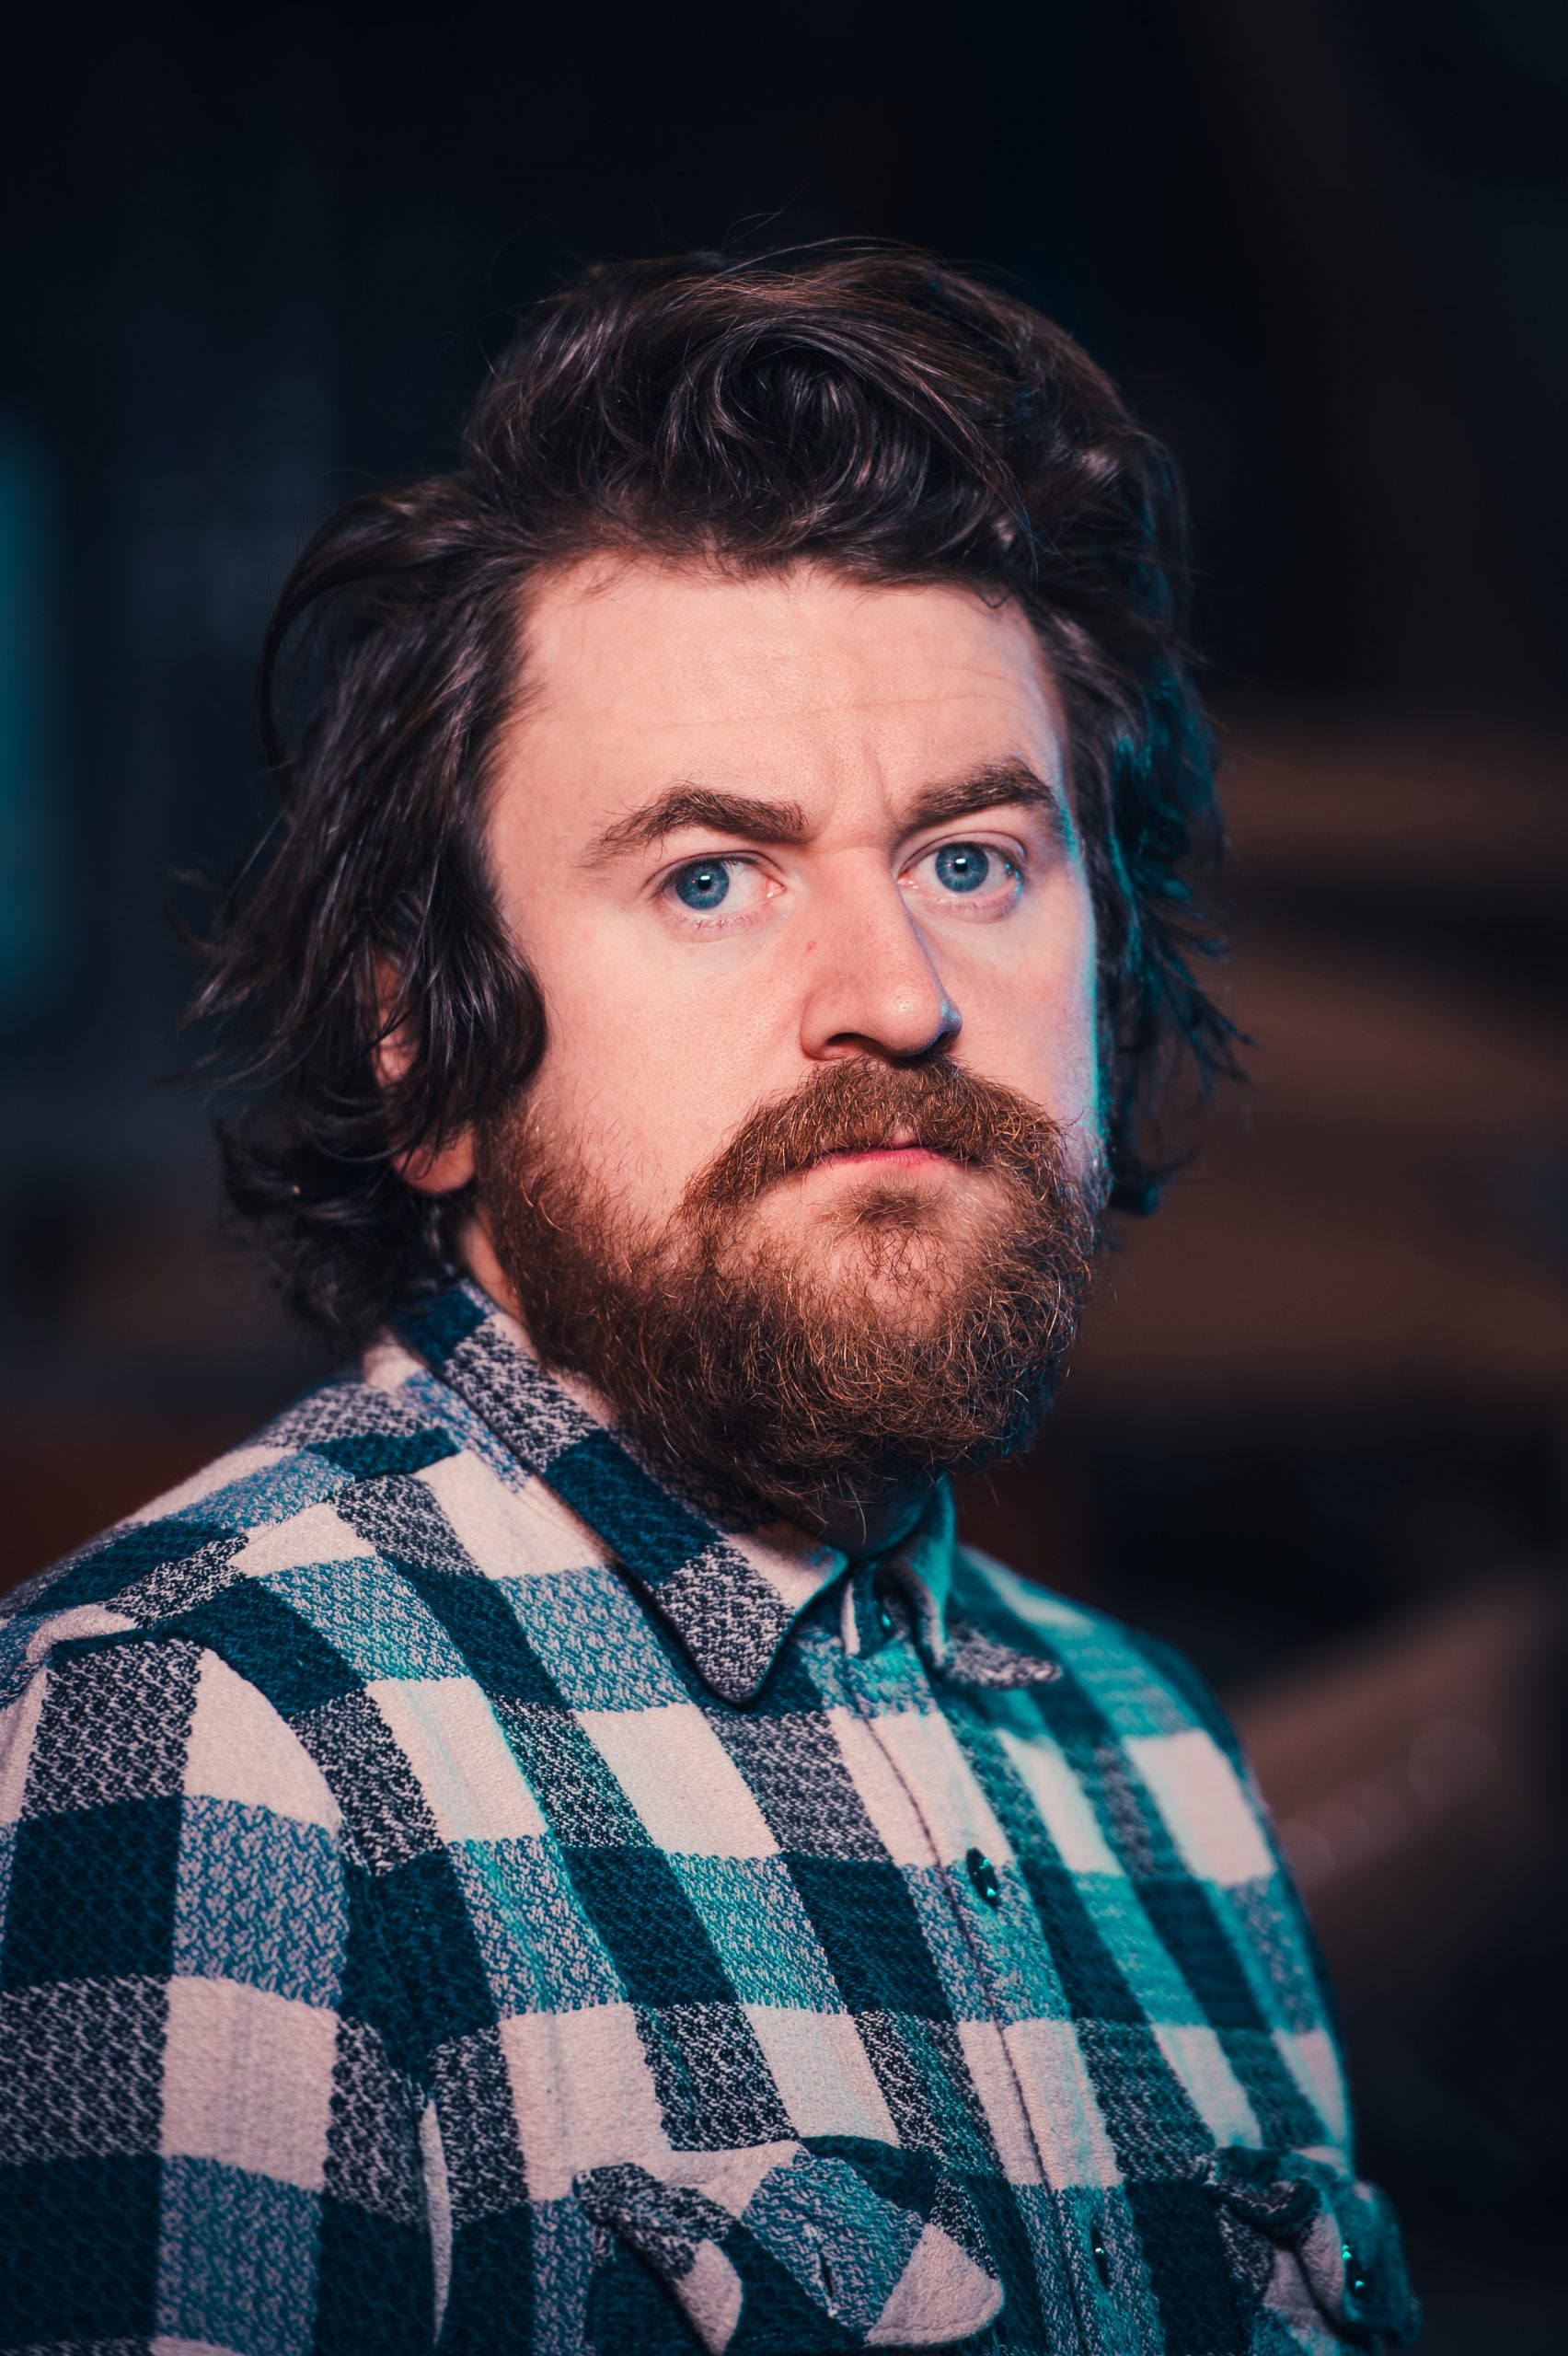 Portrait photo of a serious looking breaded man wearing a blue and white checked shirt. It is Liam Hopkins of Manchester design studio Lazerian